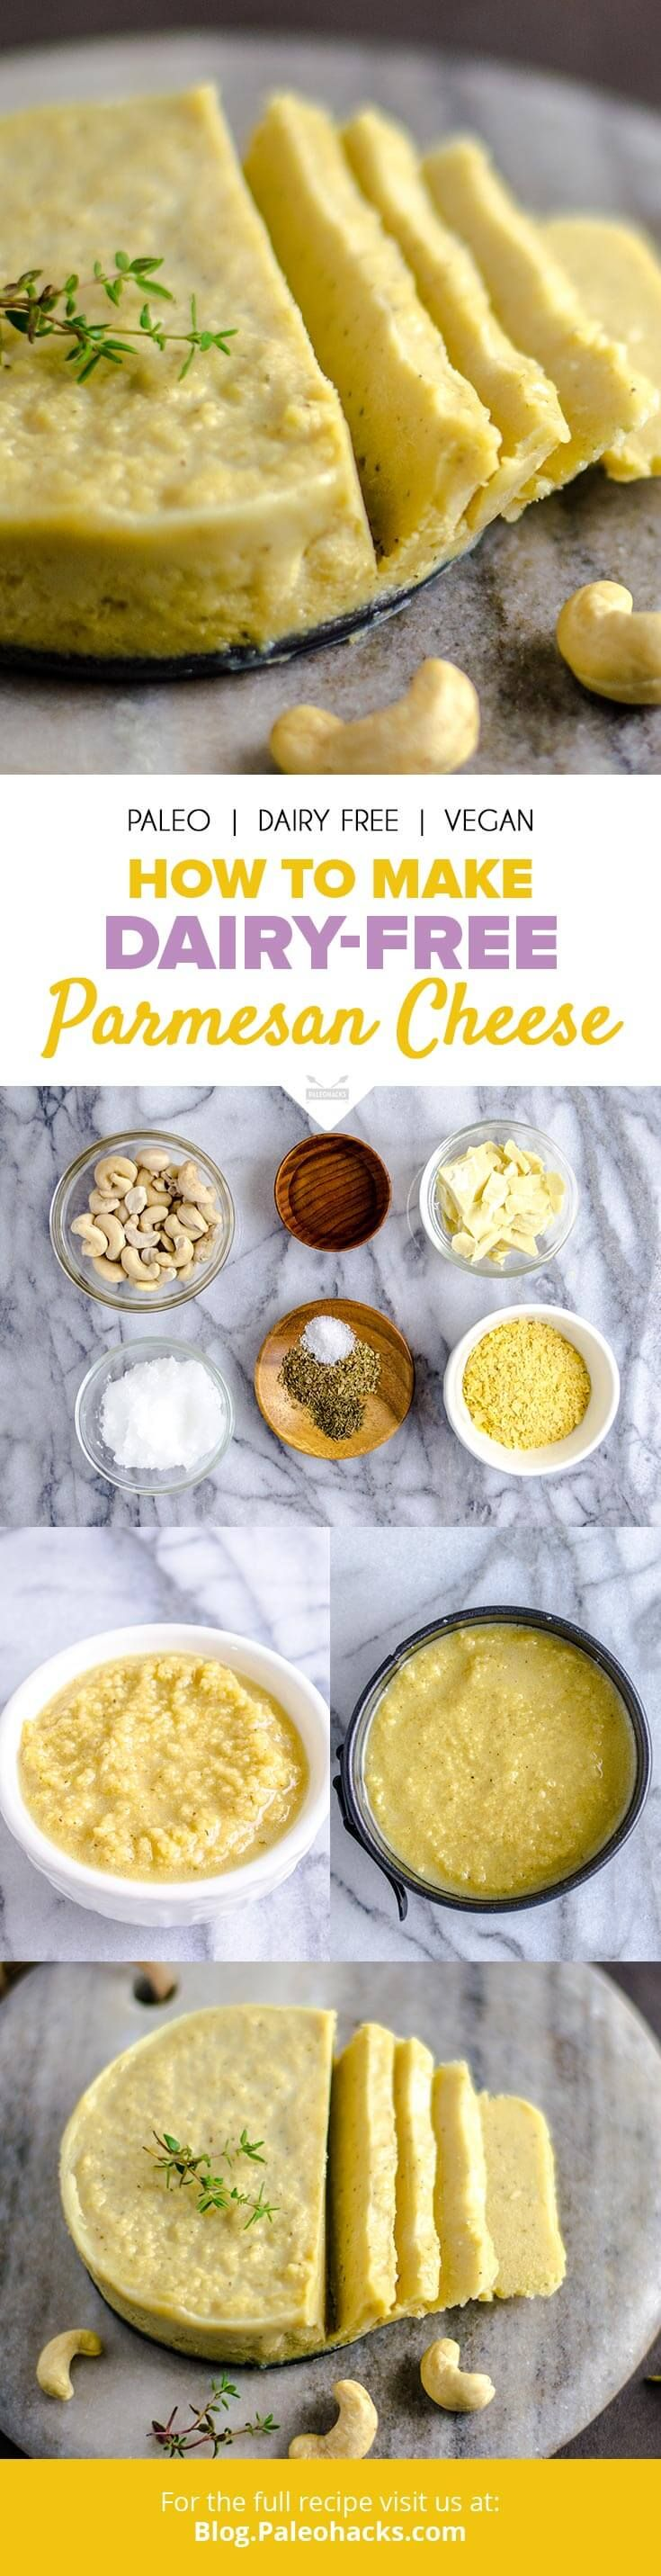 Blurb: Say what?! Dairy-free Parmesan cheese that's a cinch to make Get the recipe here: http://paleo.co/parmesanrcp